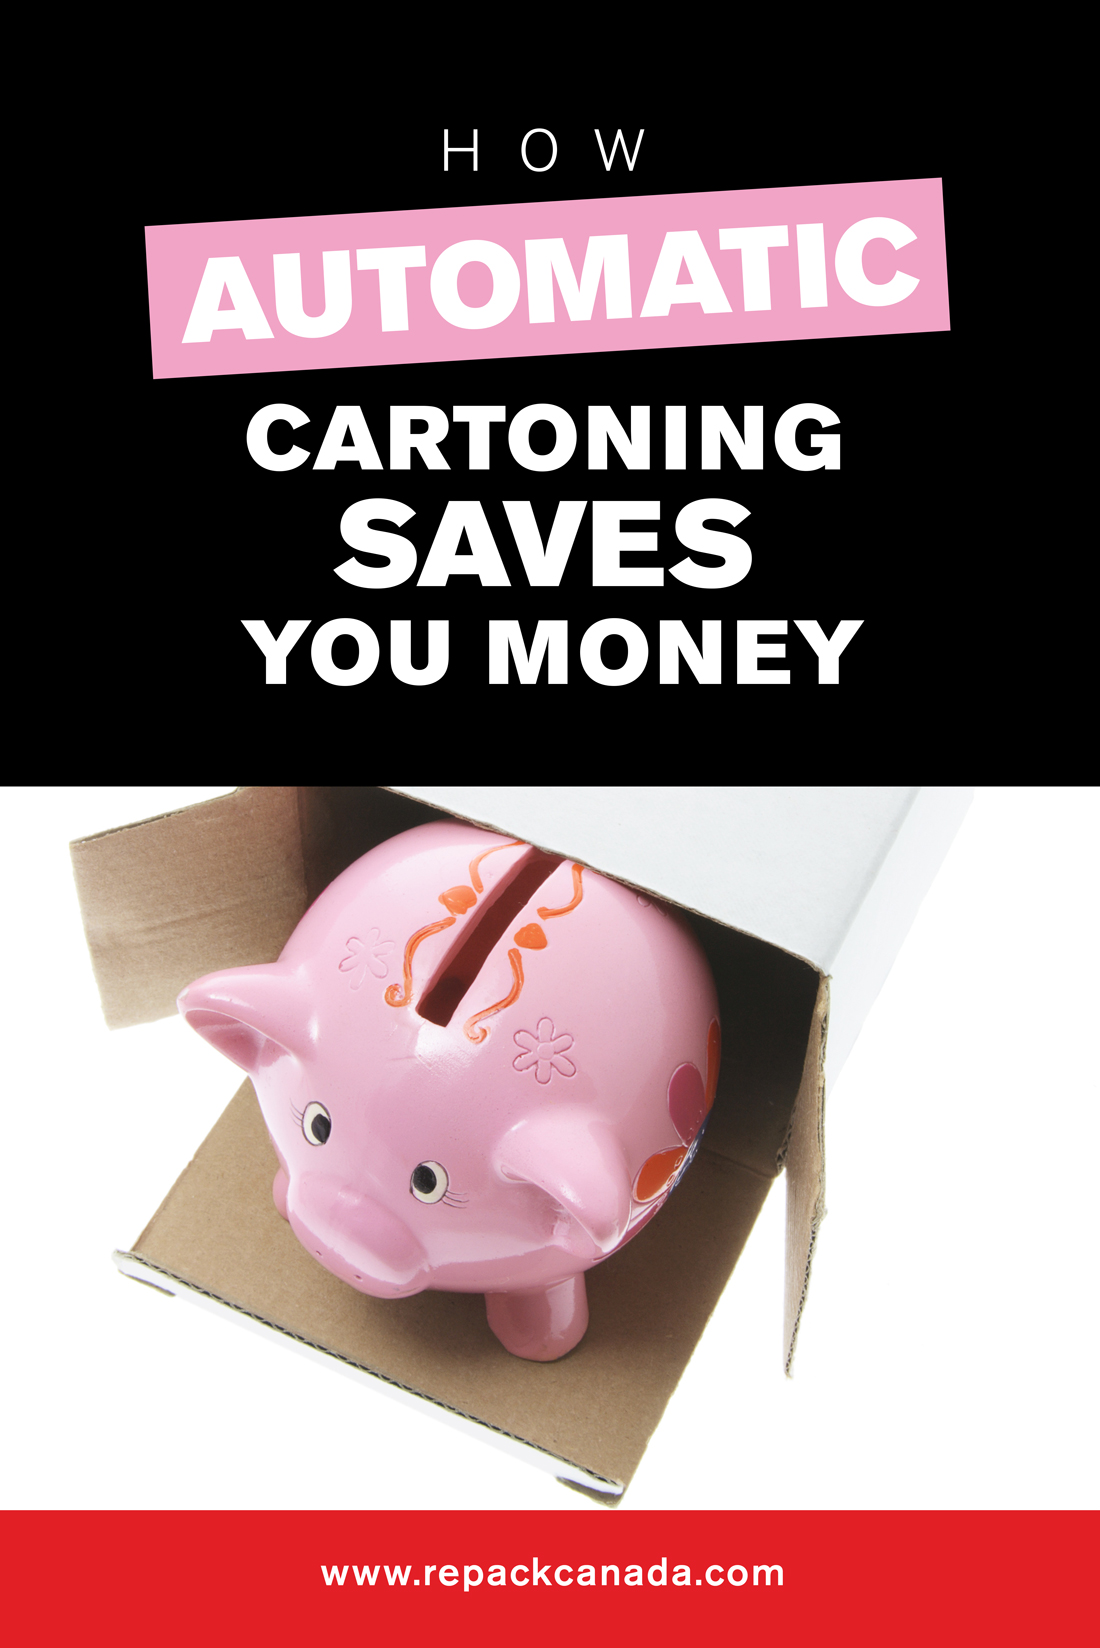 How Automatic Cartoning by Repack Canada Saves You Money